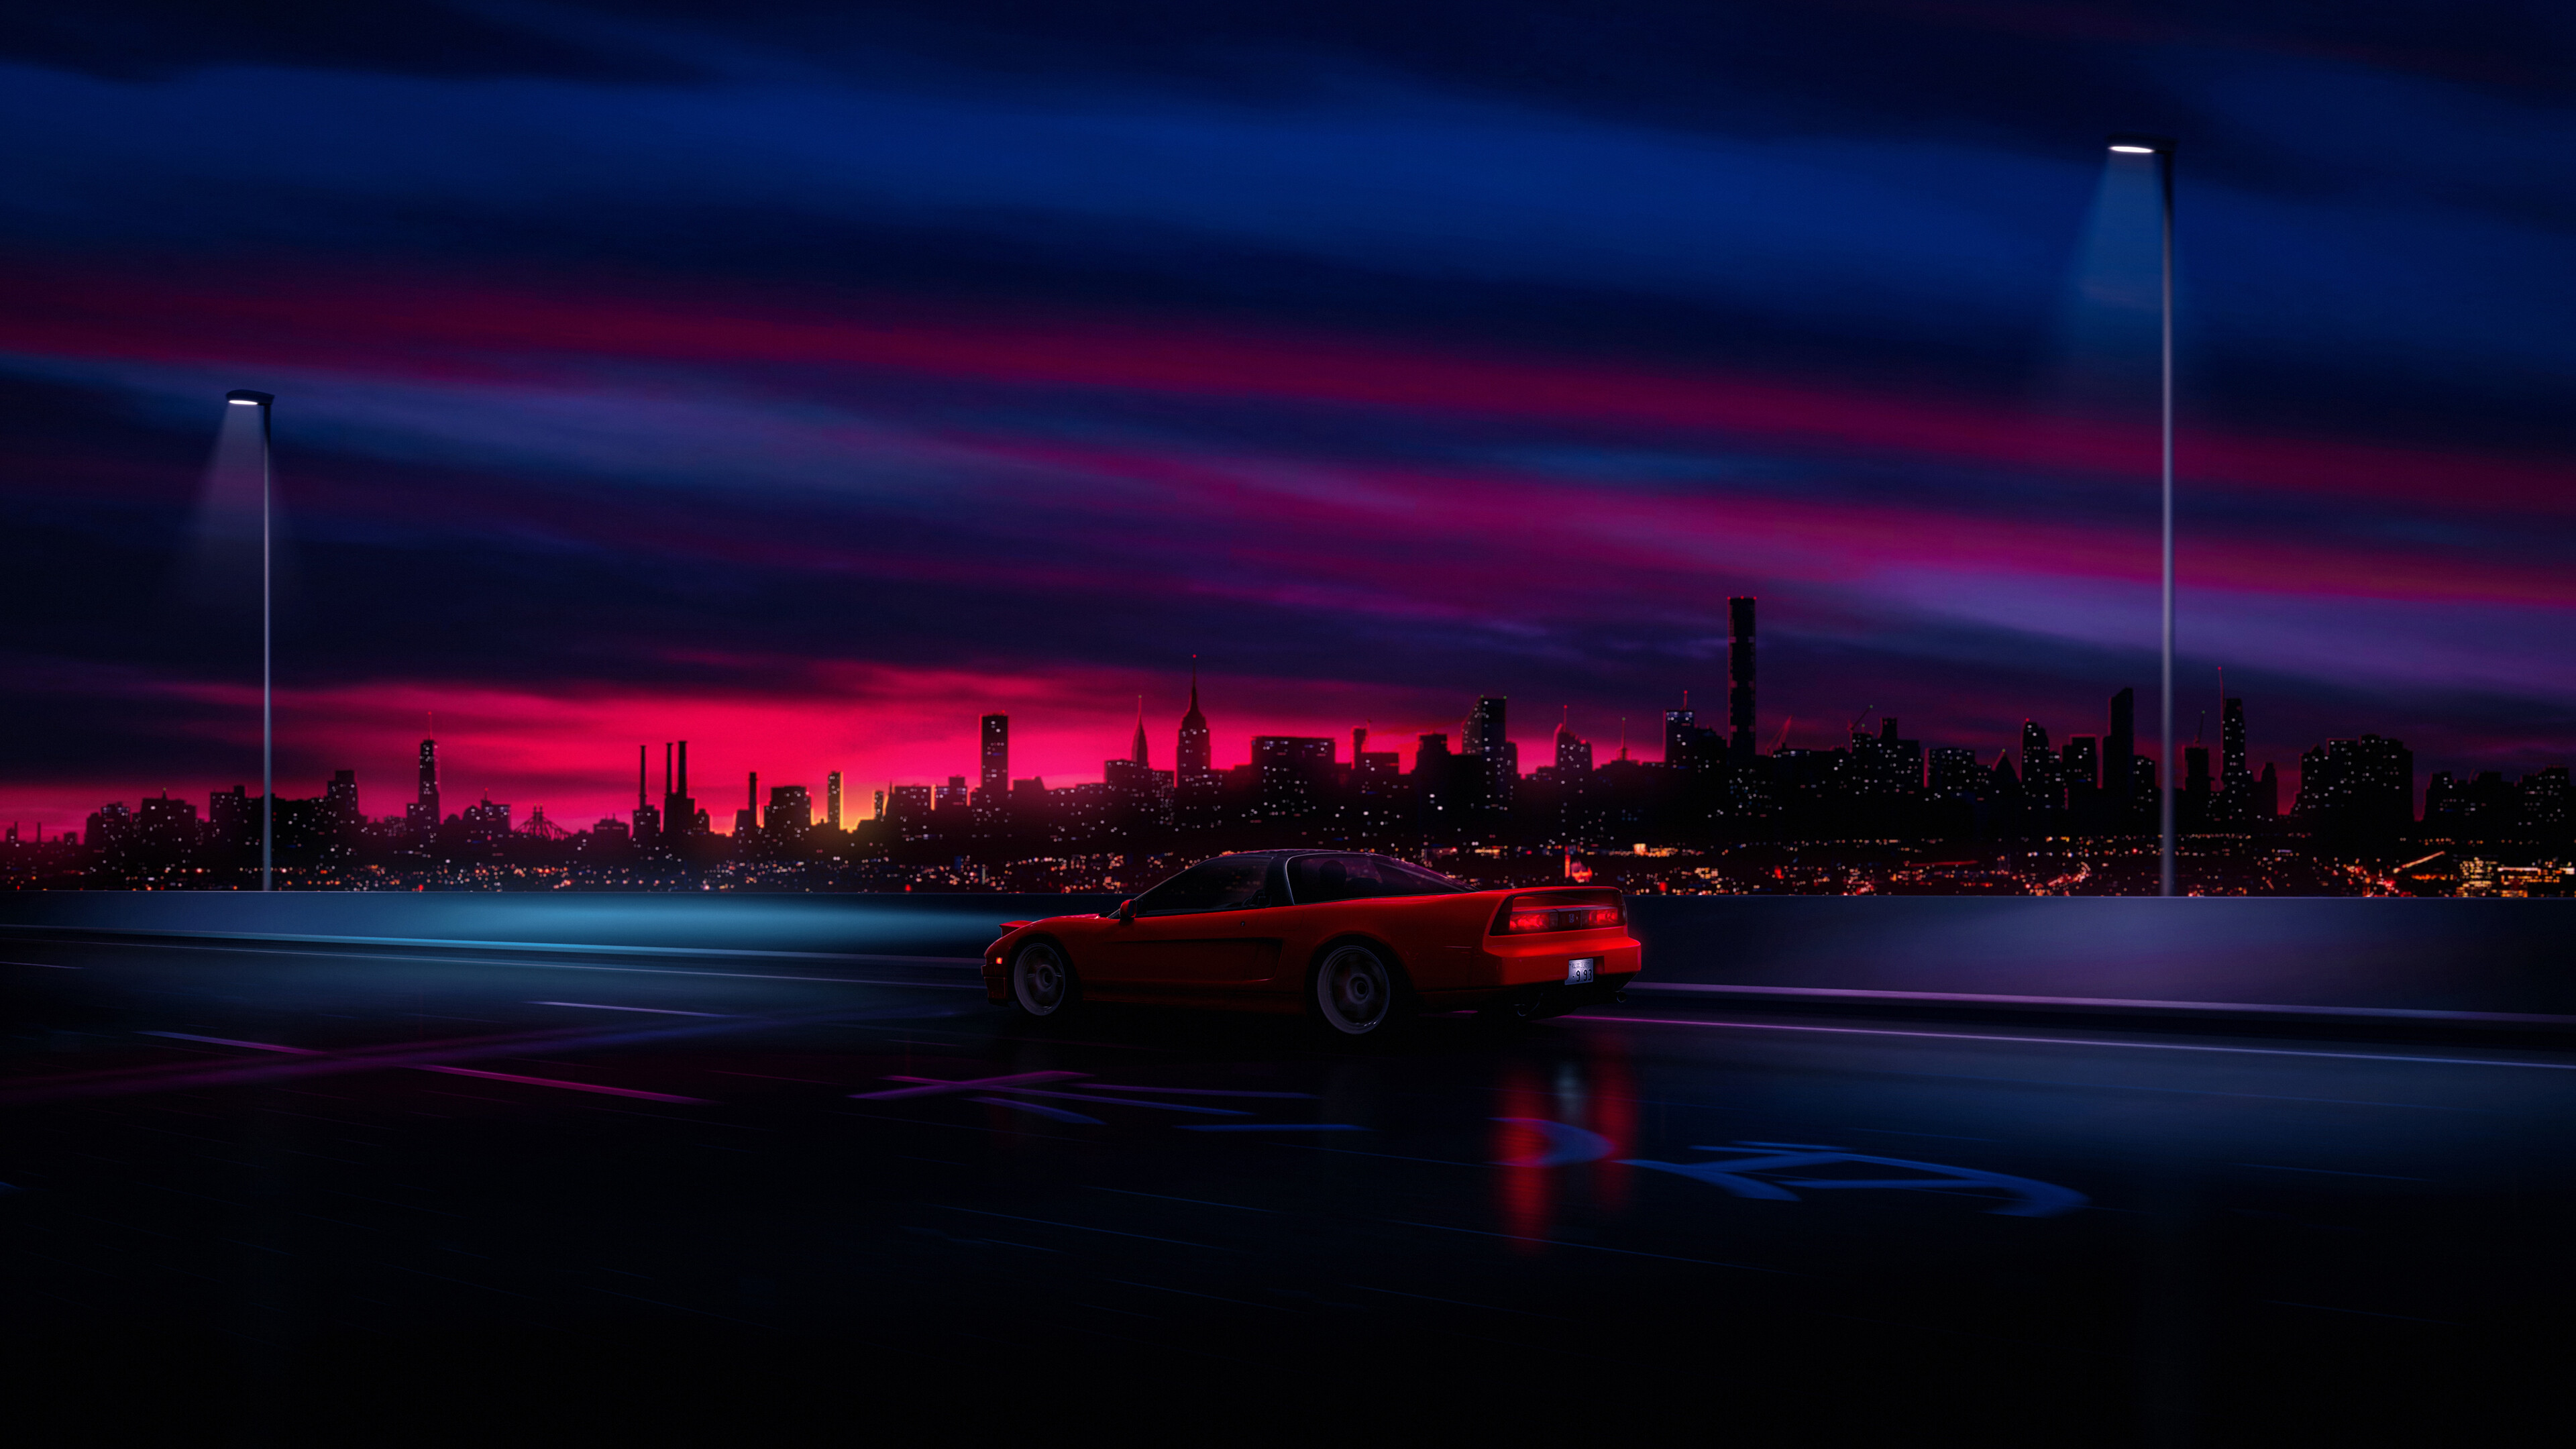 Over 40,000+ cool wallpapers to choose from. Night City Scenery Car 8k Wallpaper 4 1938